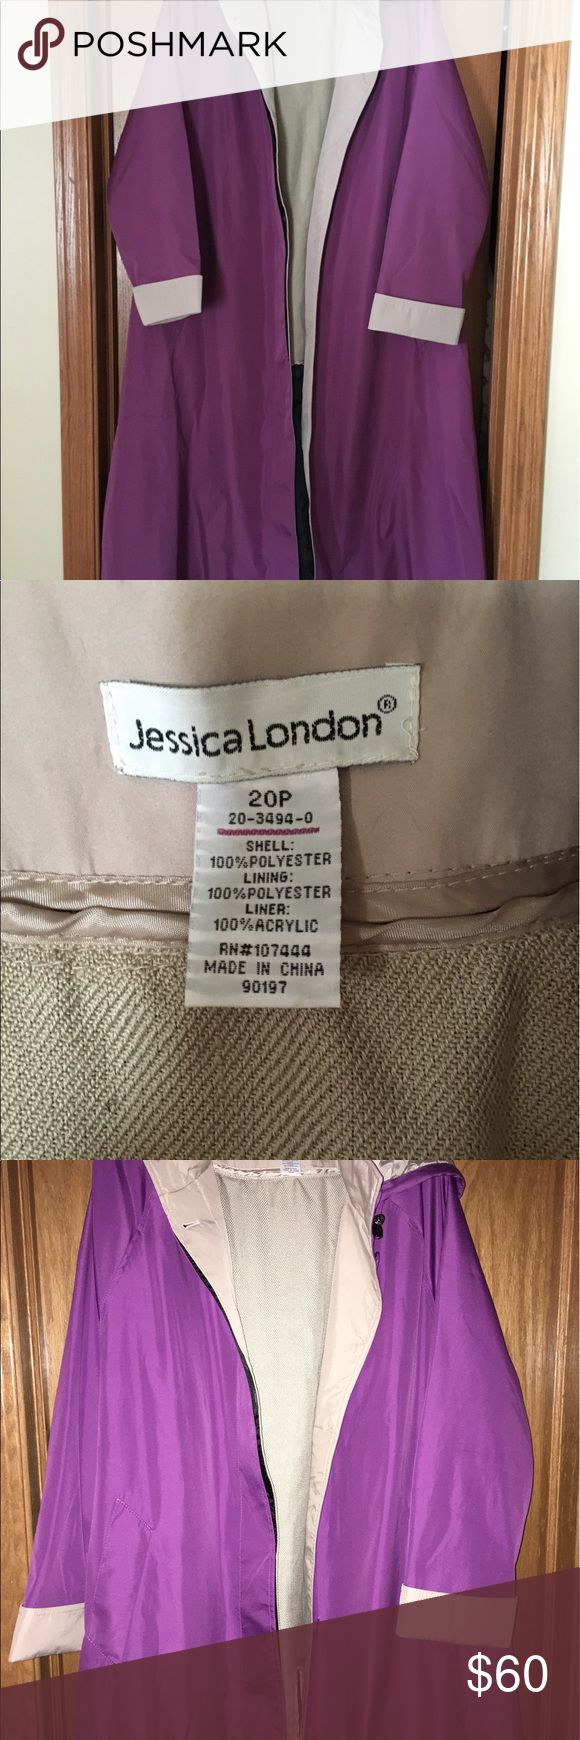 Ladies raincoat A beautiful fully lined (lining is removable) purple in color. The lining makes it a coat for cooler seasons as well as rainy ones. Size is 20P. jessica London Jackets & Coats Trench Coats